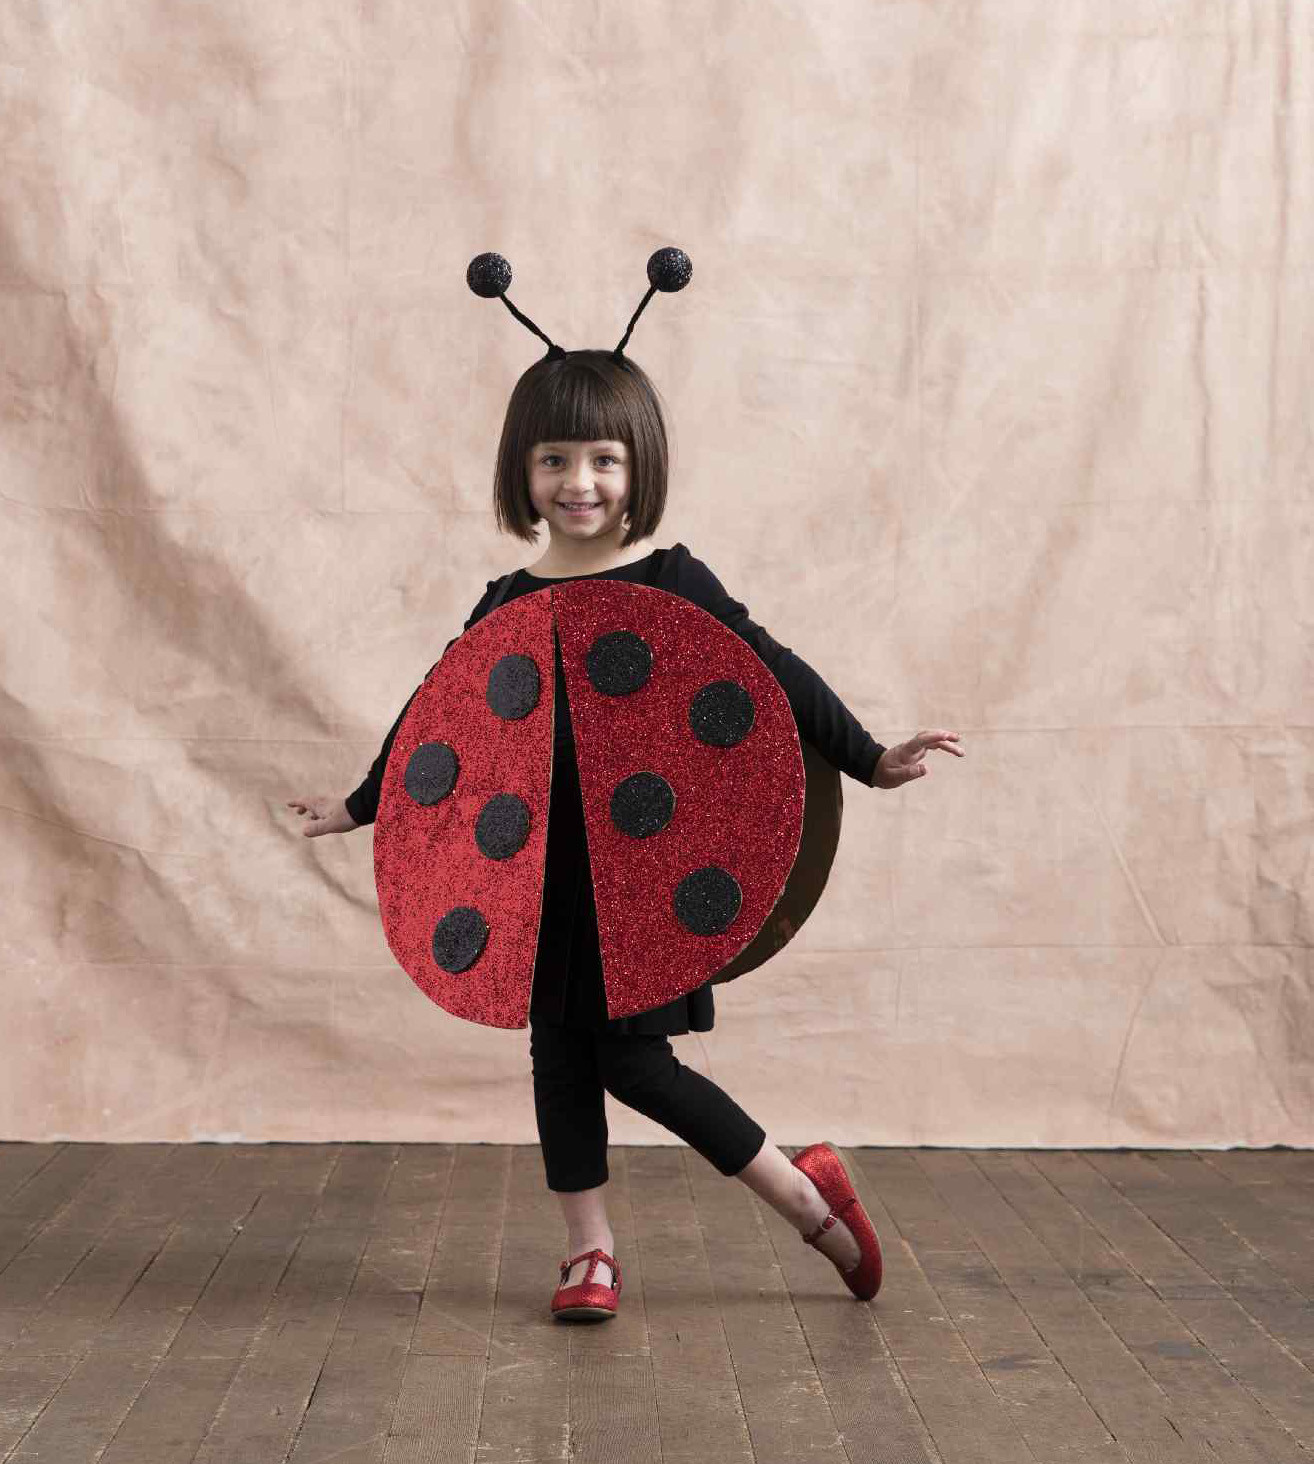 Best ideas about DIY Bug Costume . Save or Pin DIY Ladybug Costume Now.